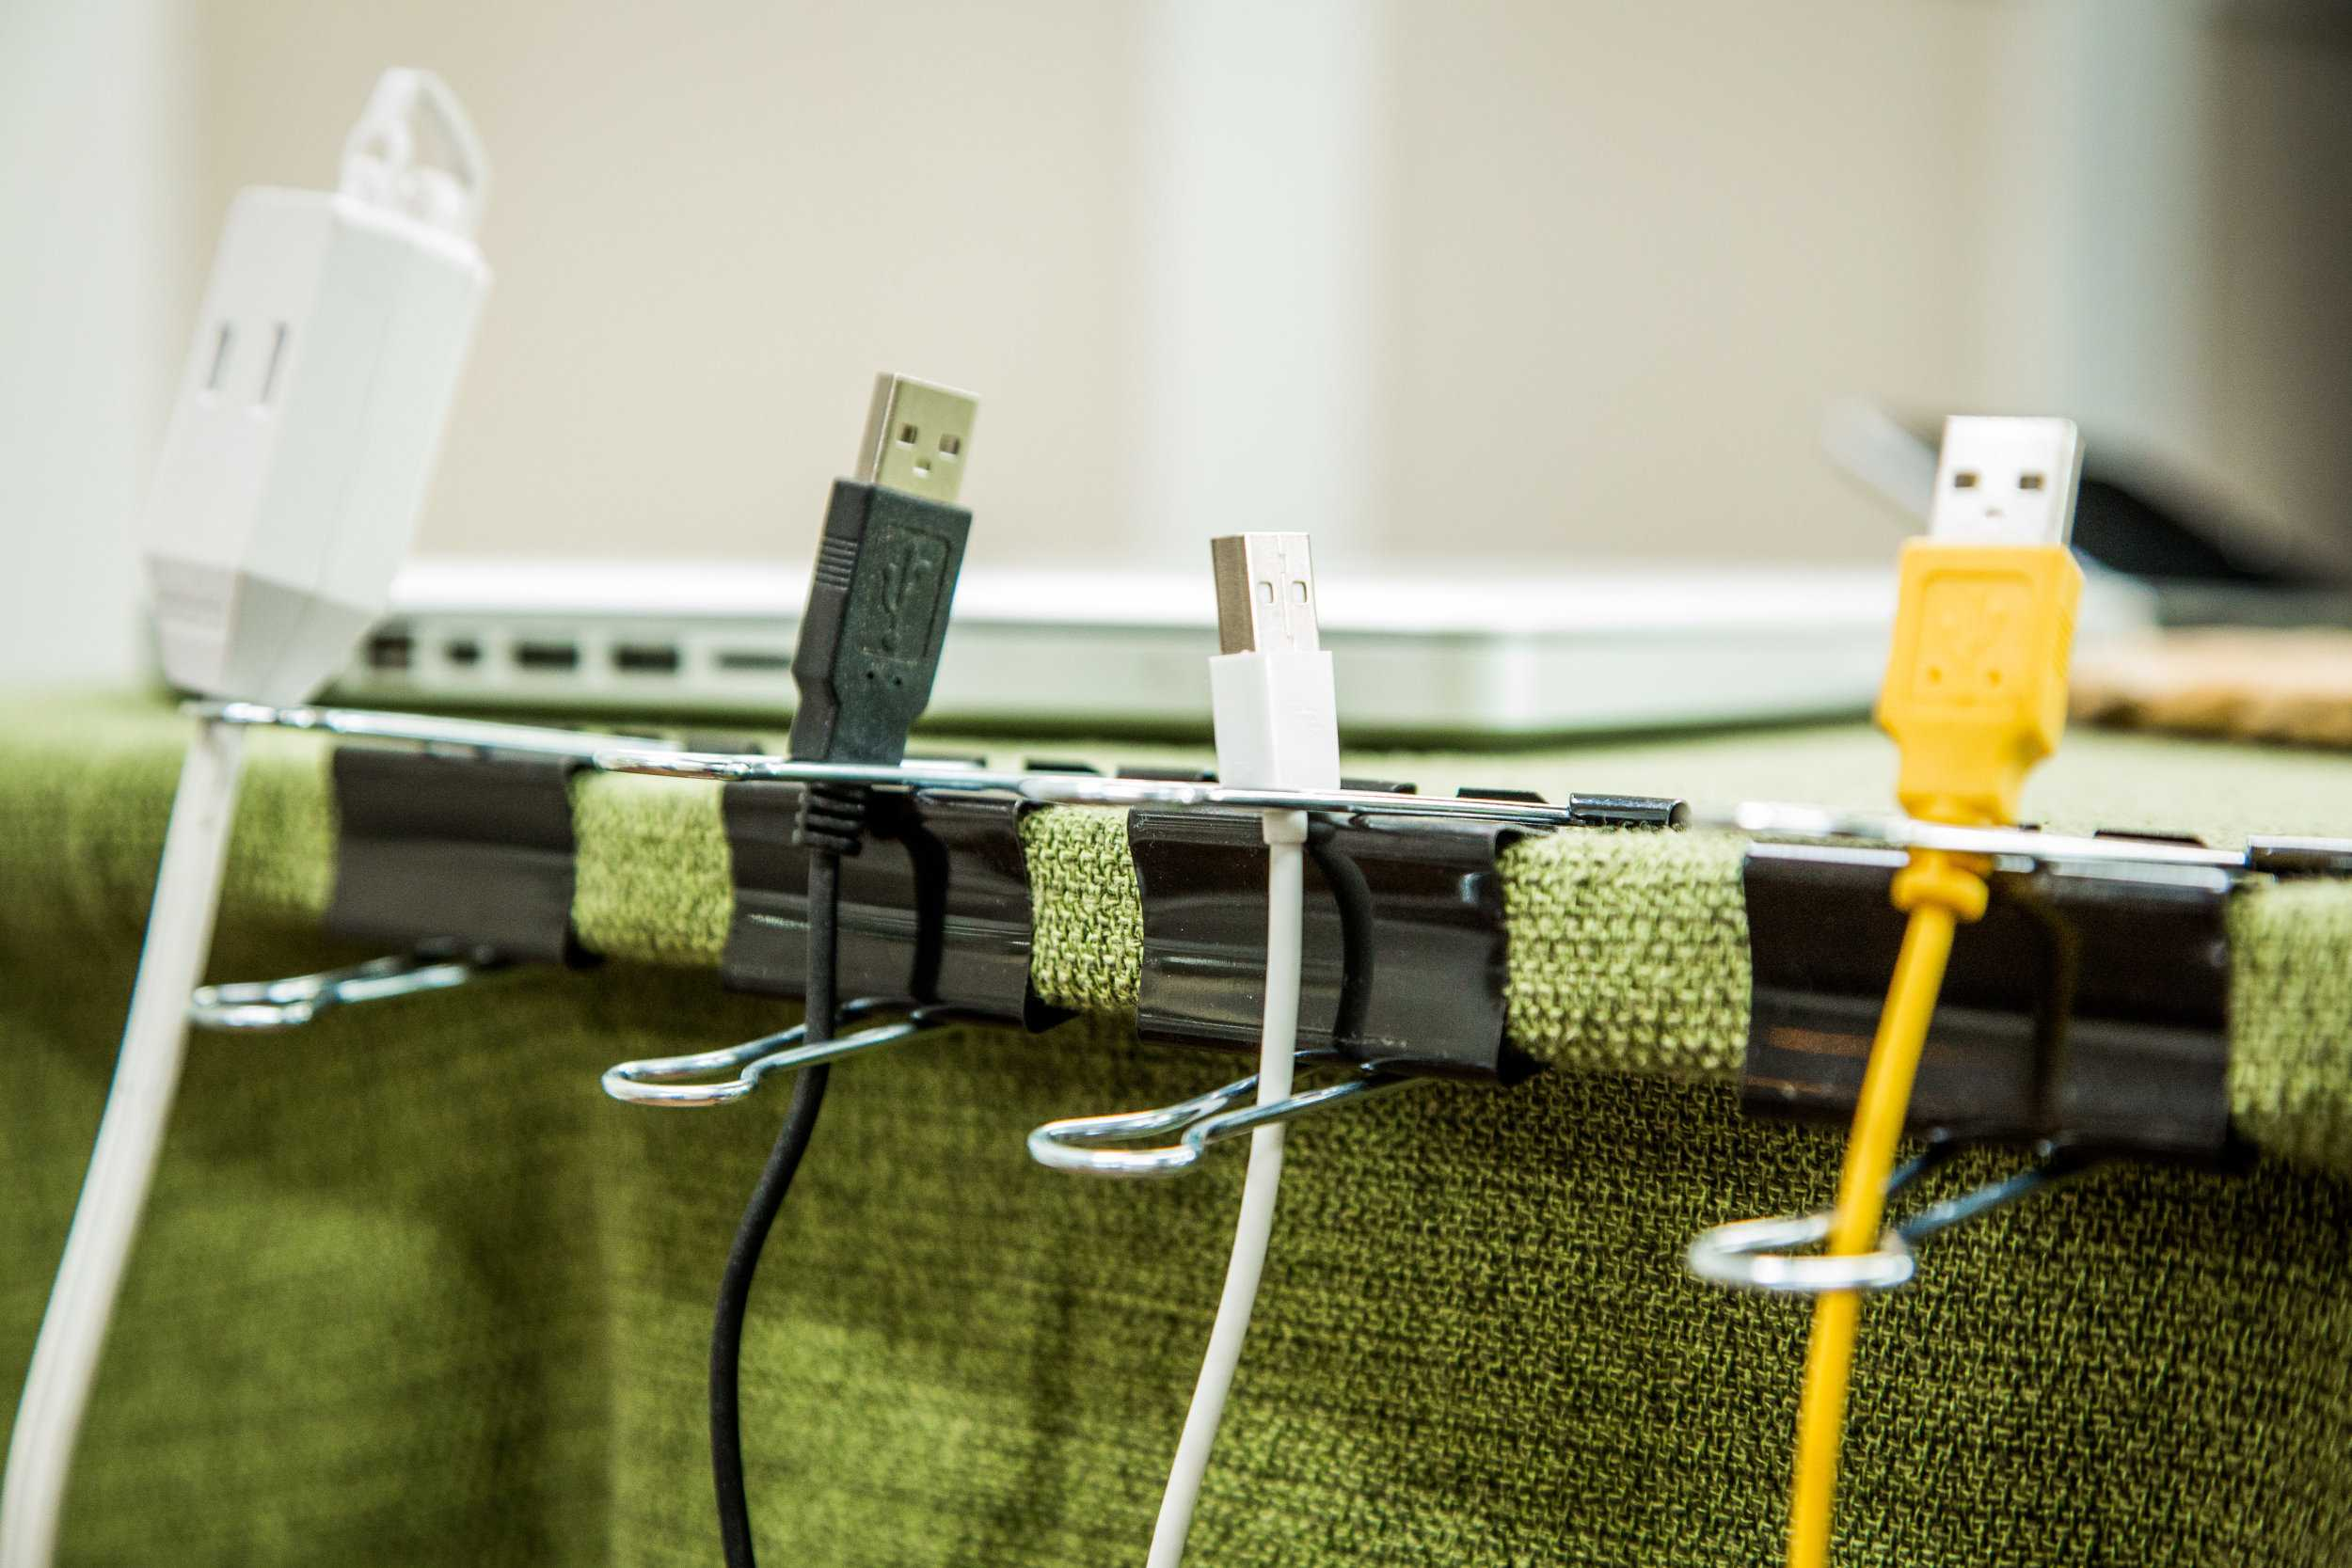 Keep track of computer cables with binder clips, which are surprising DIY desk organization ideas!